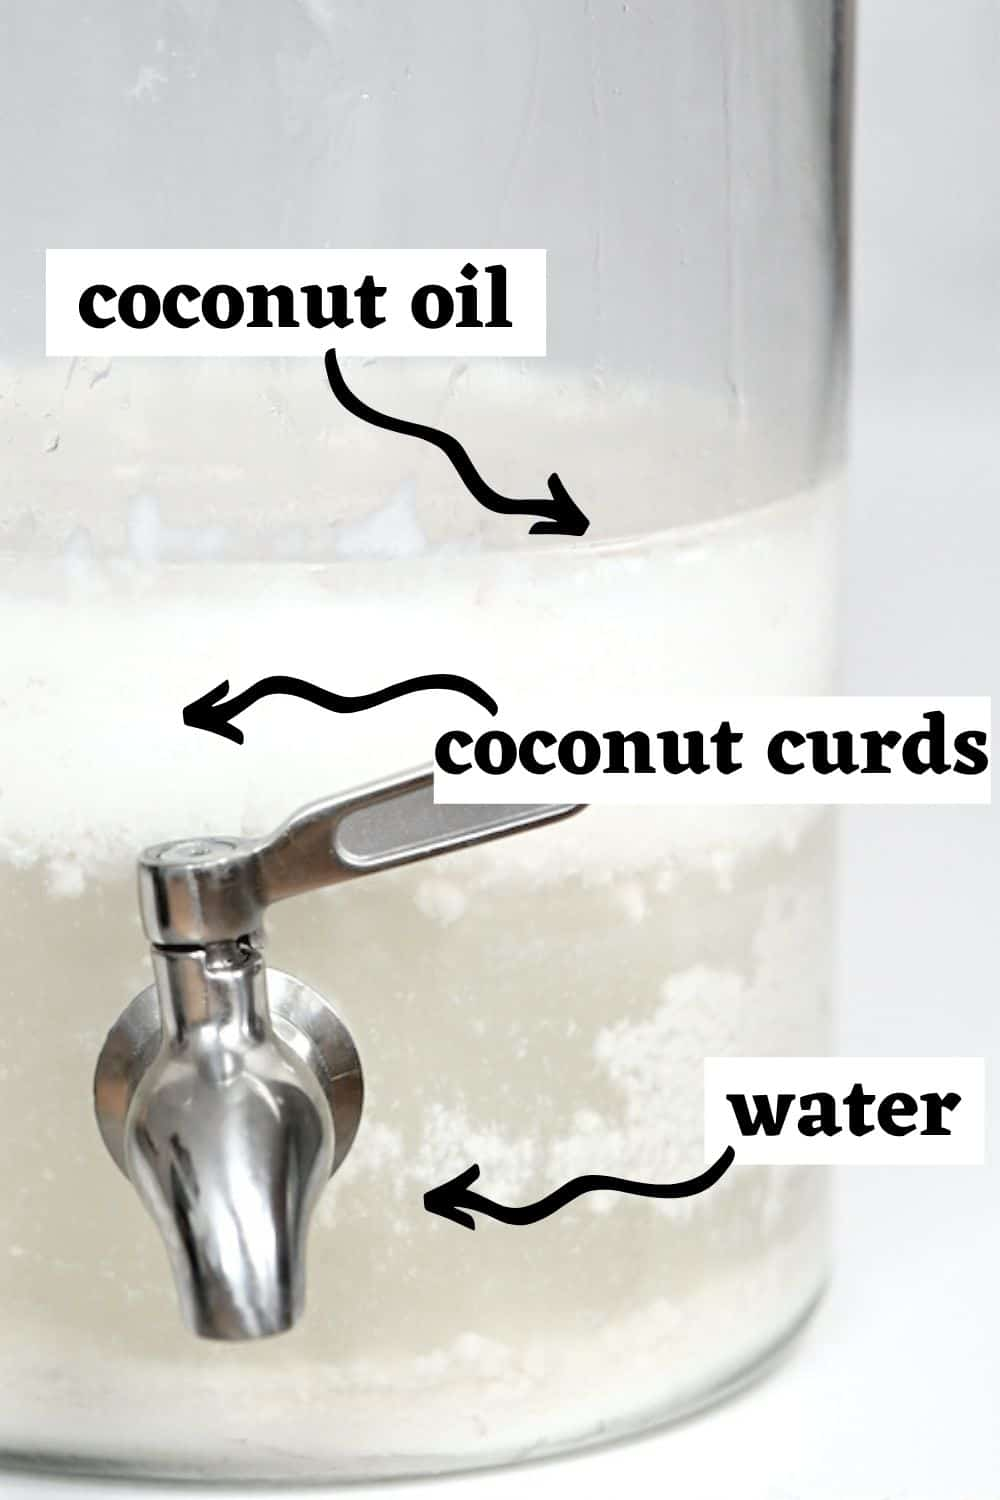 Poiting to coconut oil curds and water